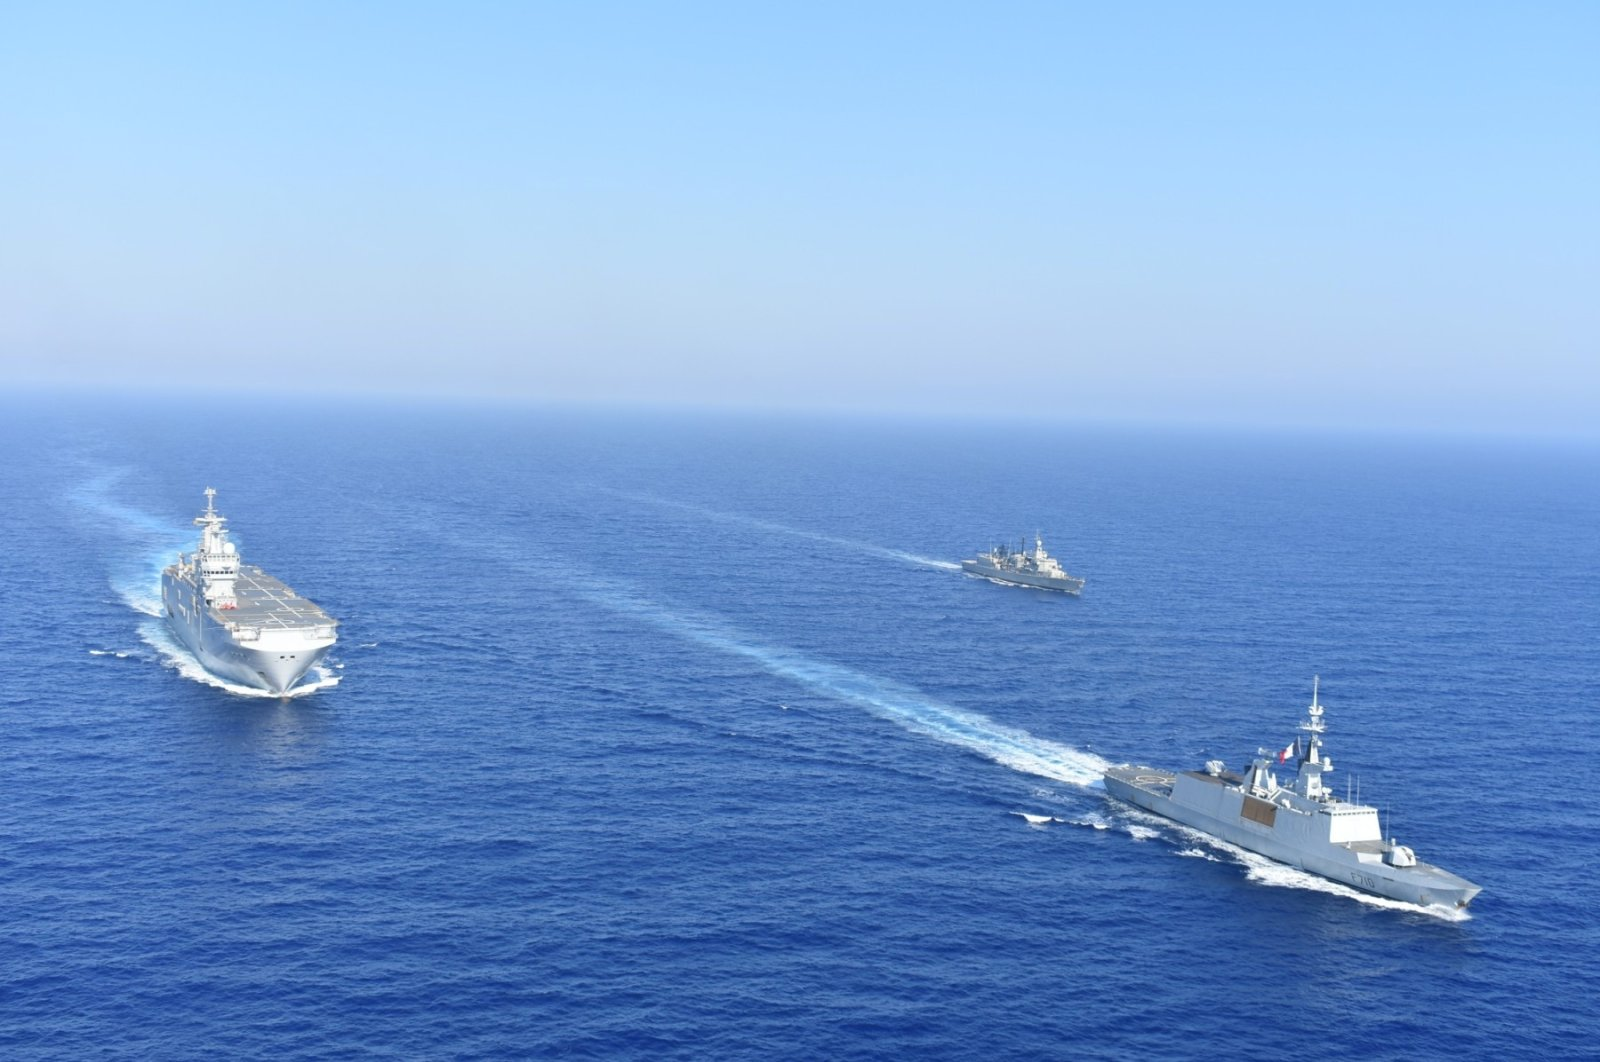 Greek and French vessels sail in formation during a joint military exercise in the Mediterranean, Aug.13, 2020. (Reuters Photo)